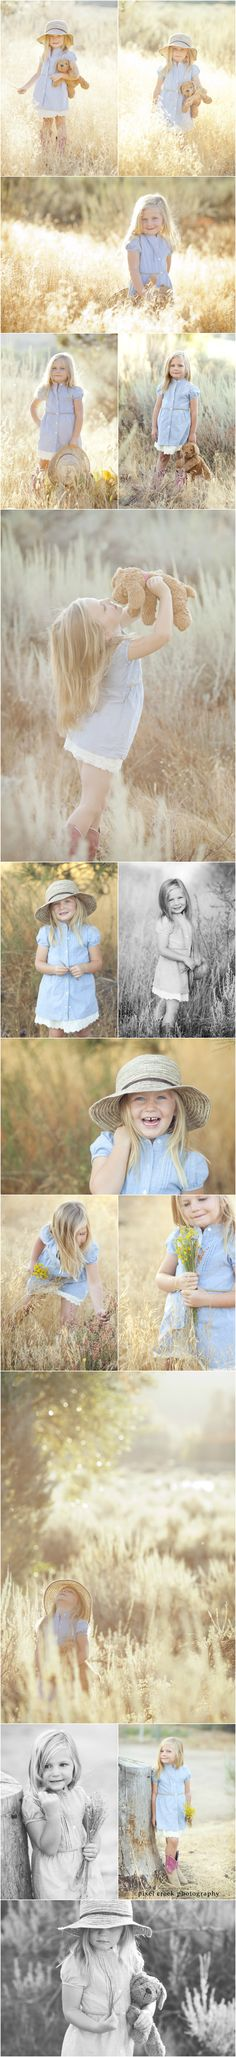 Outdoor Photo Session Ideas | Props | Prop | Child Photography | Clothing Inspiration| Fashion | Pose Idea | Poses |